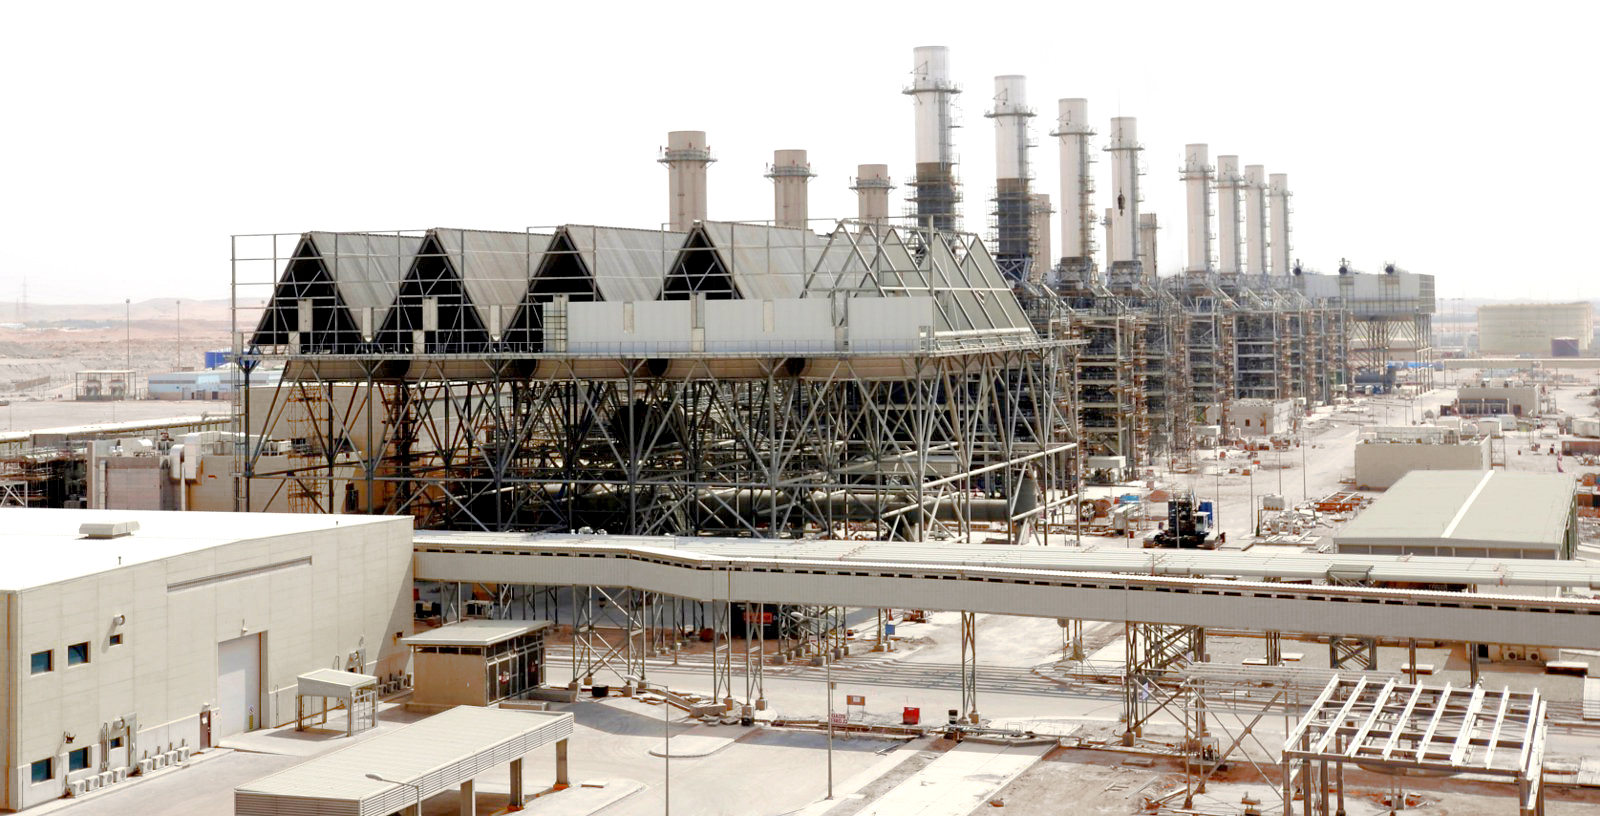 ARANER project at a power plant